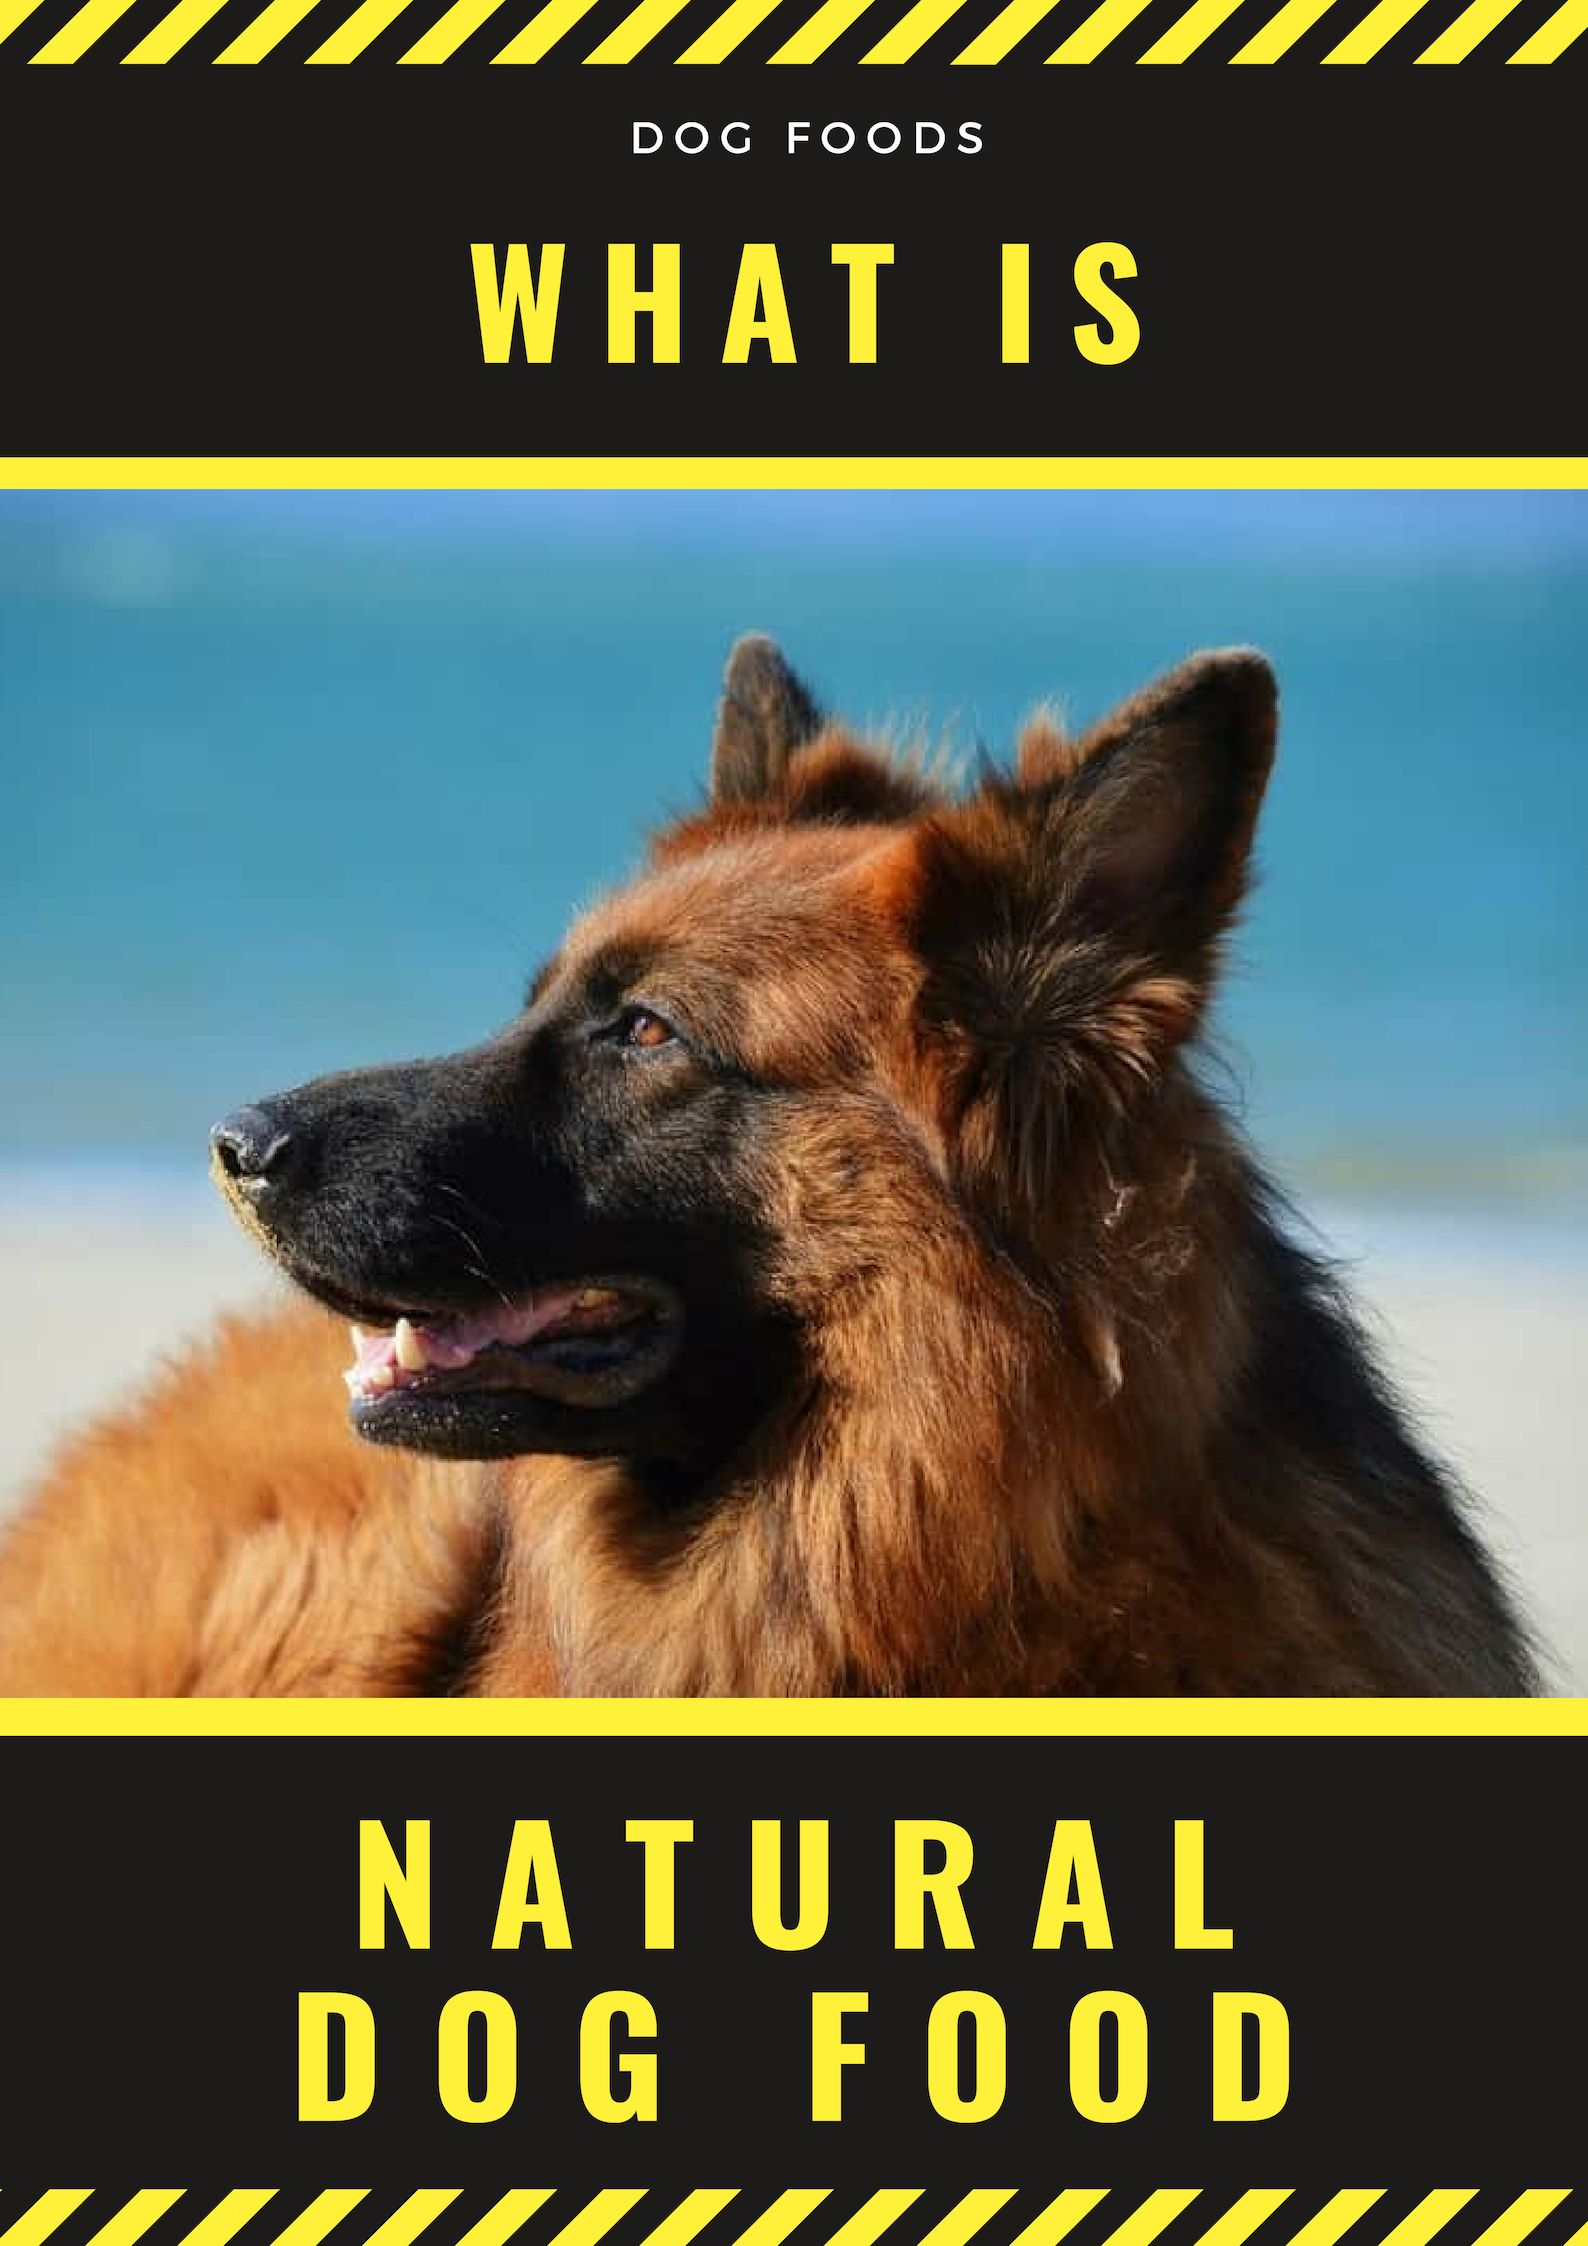 As You Can See Feeding Dogs With Natural Dog Food May Not Be